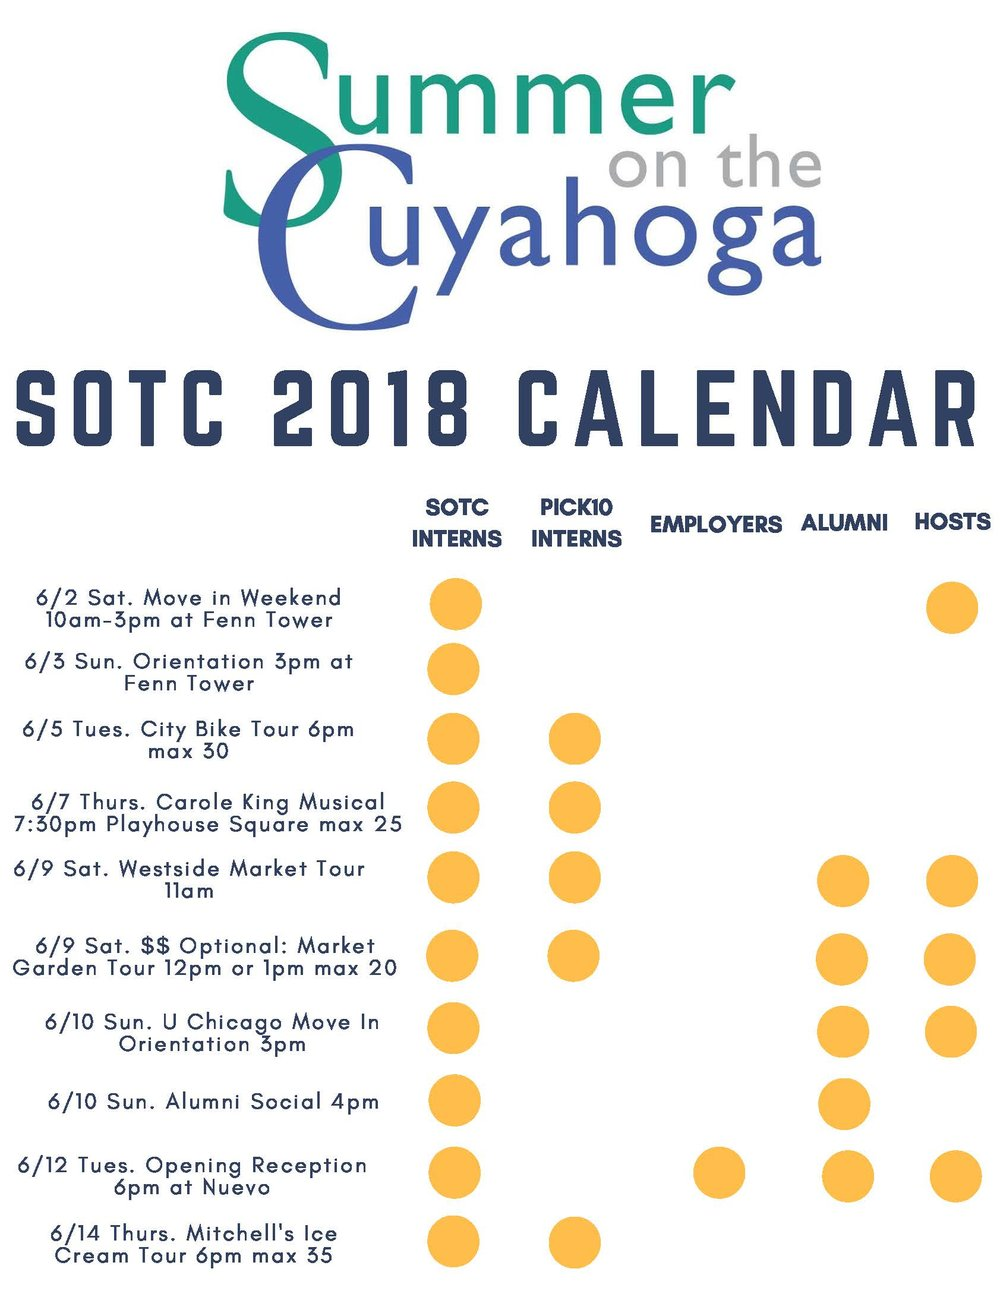 SOTC 2018 Calendar - List Version_Page_1.jpg